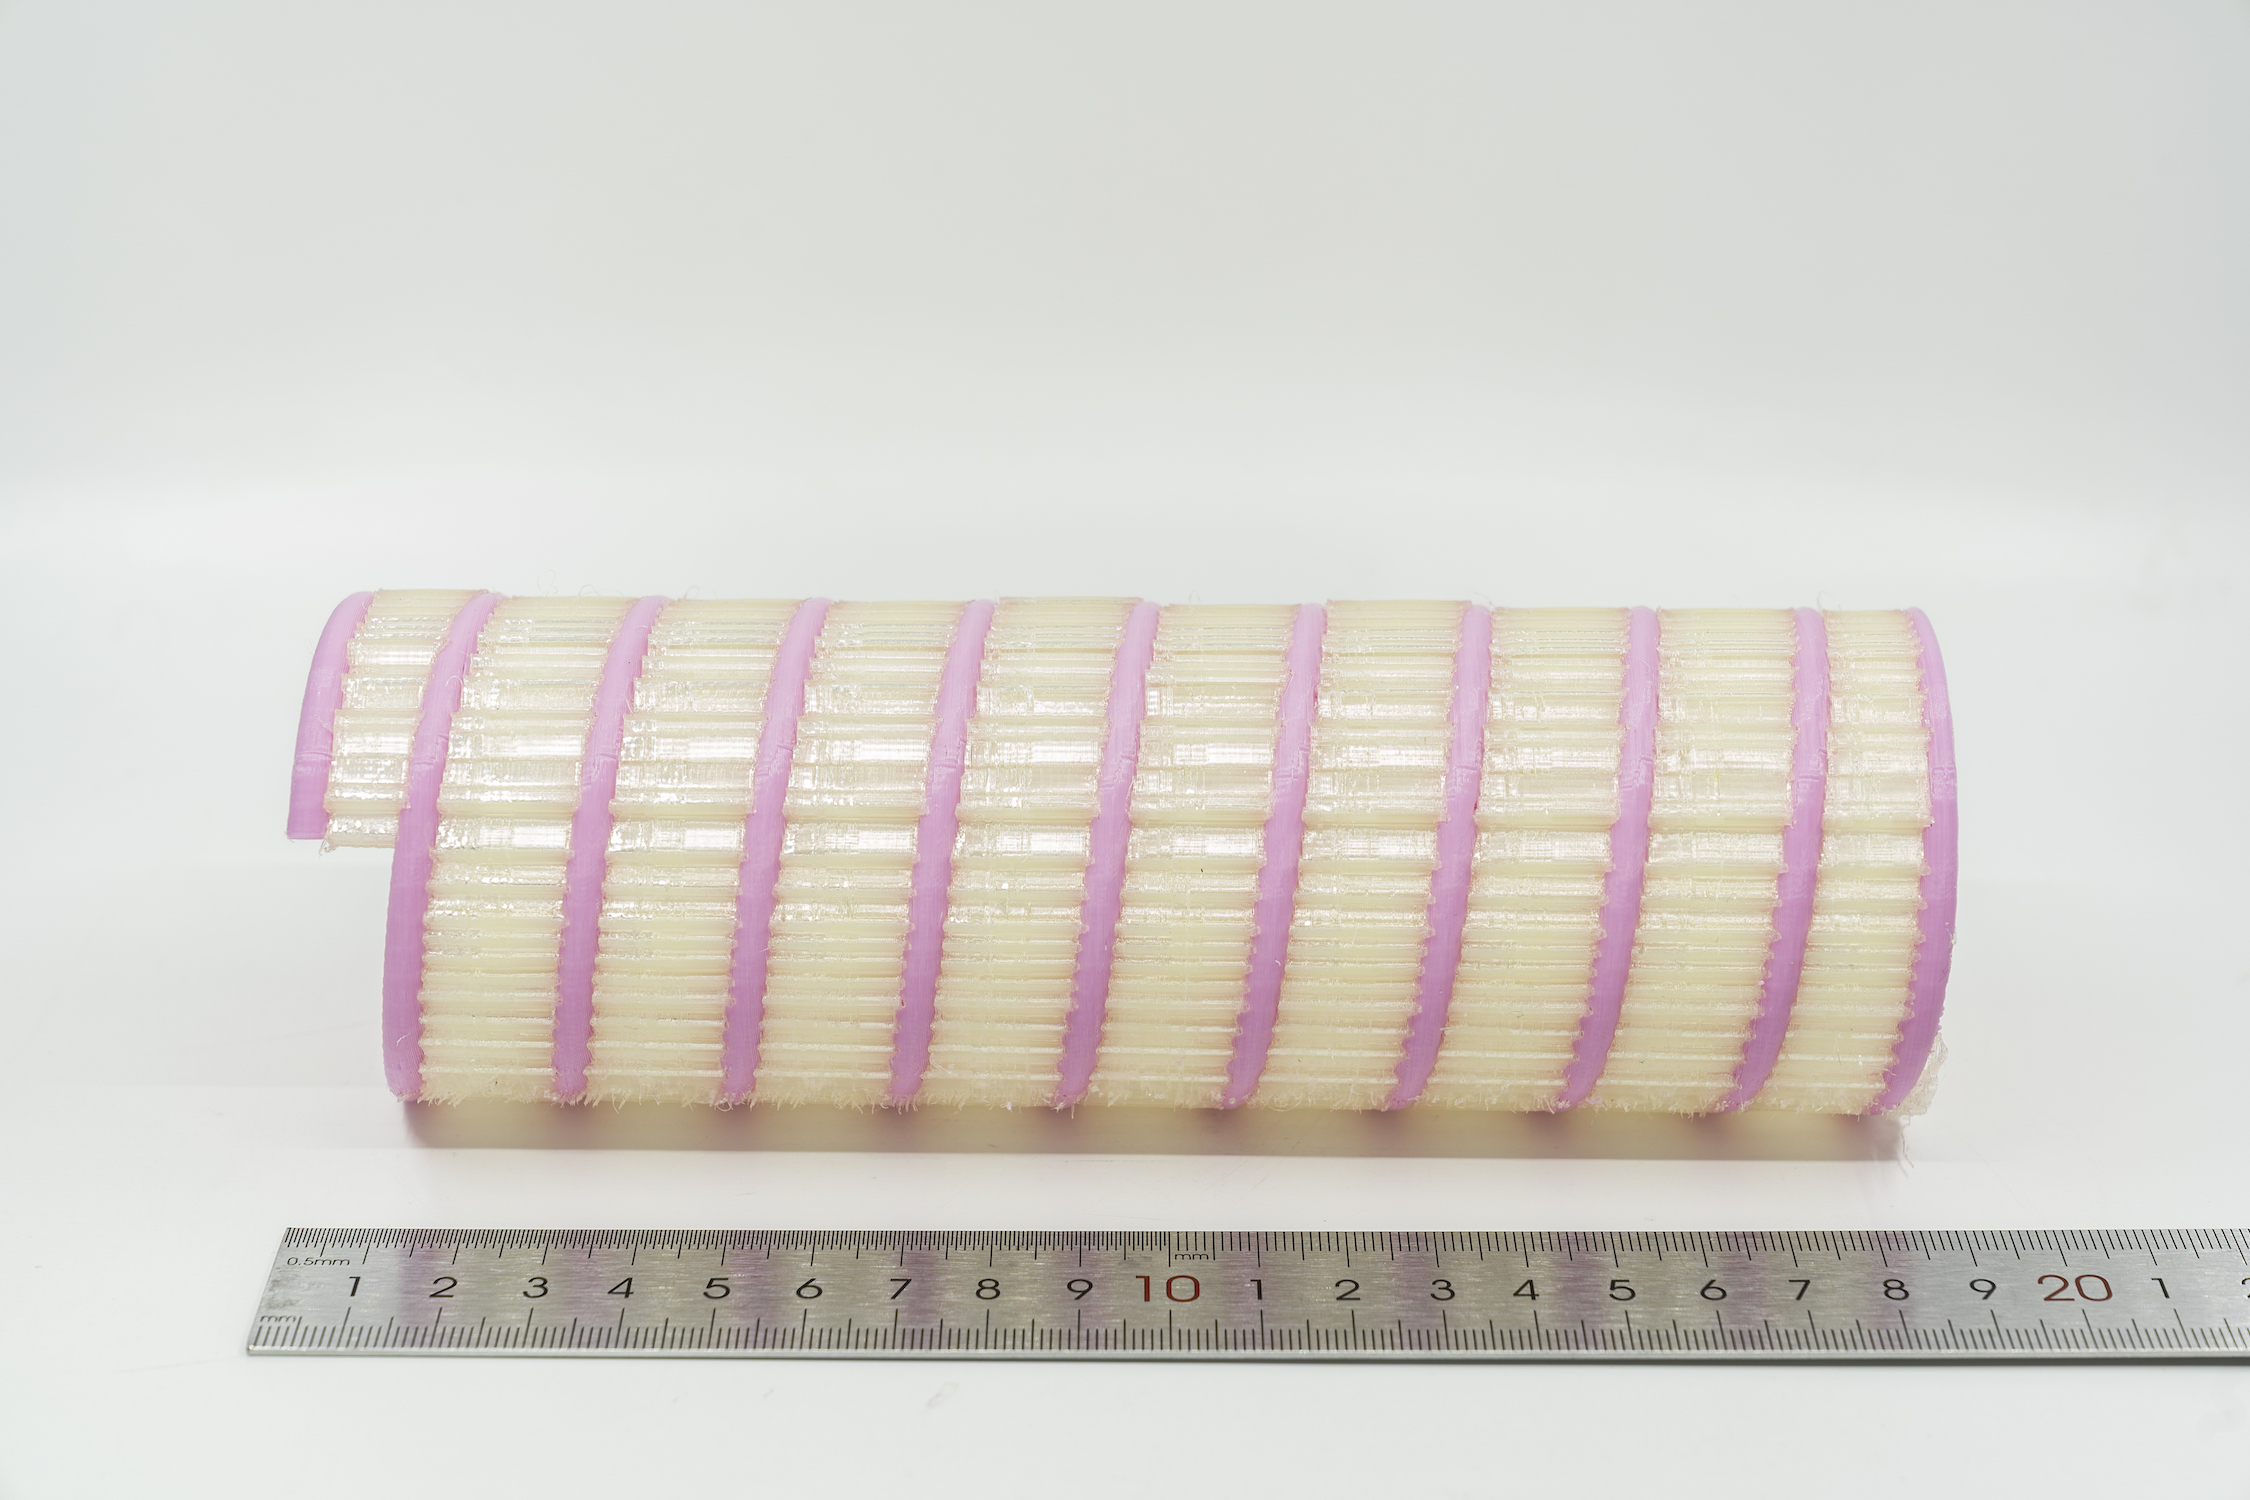 PLA part with PVA support material